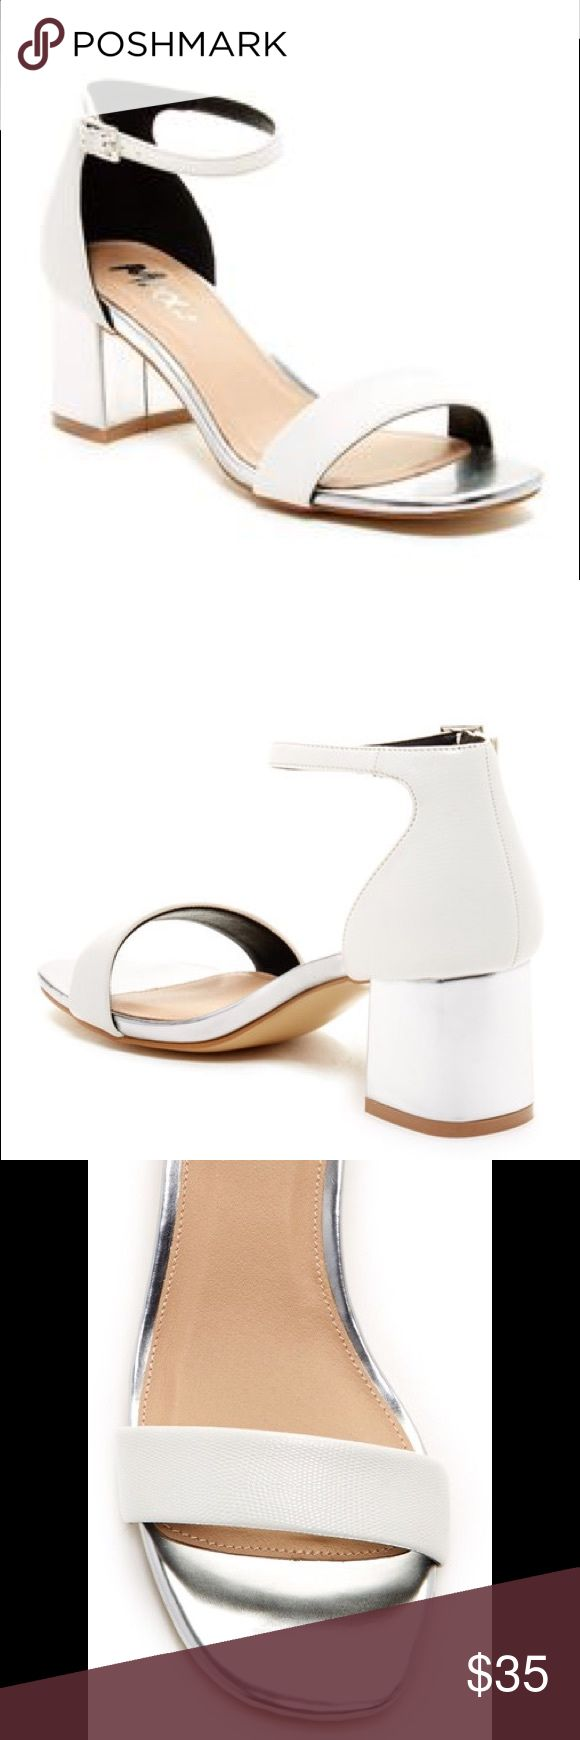 Mixx Shuz • Sally Chunky Heel New without box! Never worn. Adorable white and silver chunky heels with ankle strap. Very comfy and will go with everything! Looks great paired with skinny jeans. No trades. Mixx Shuz Shoes Heels